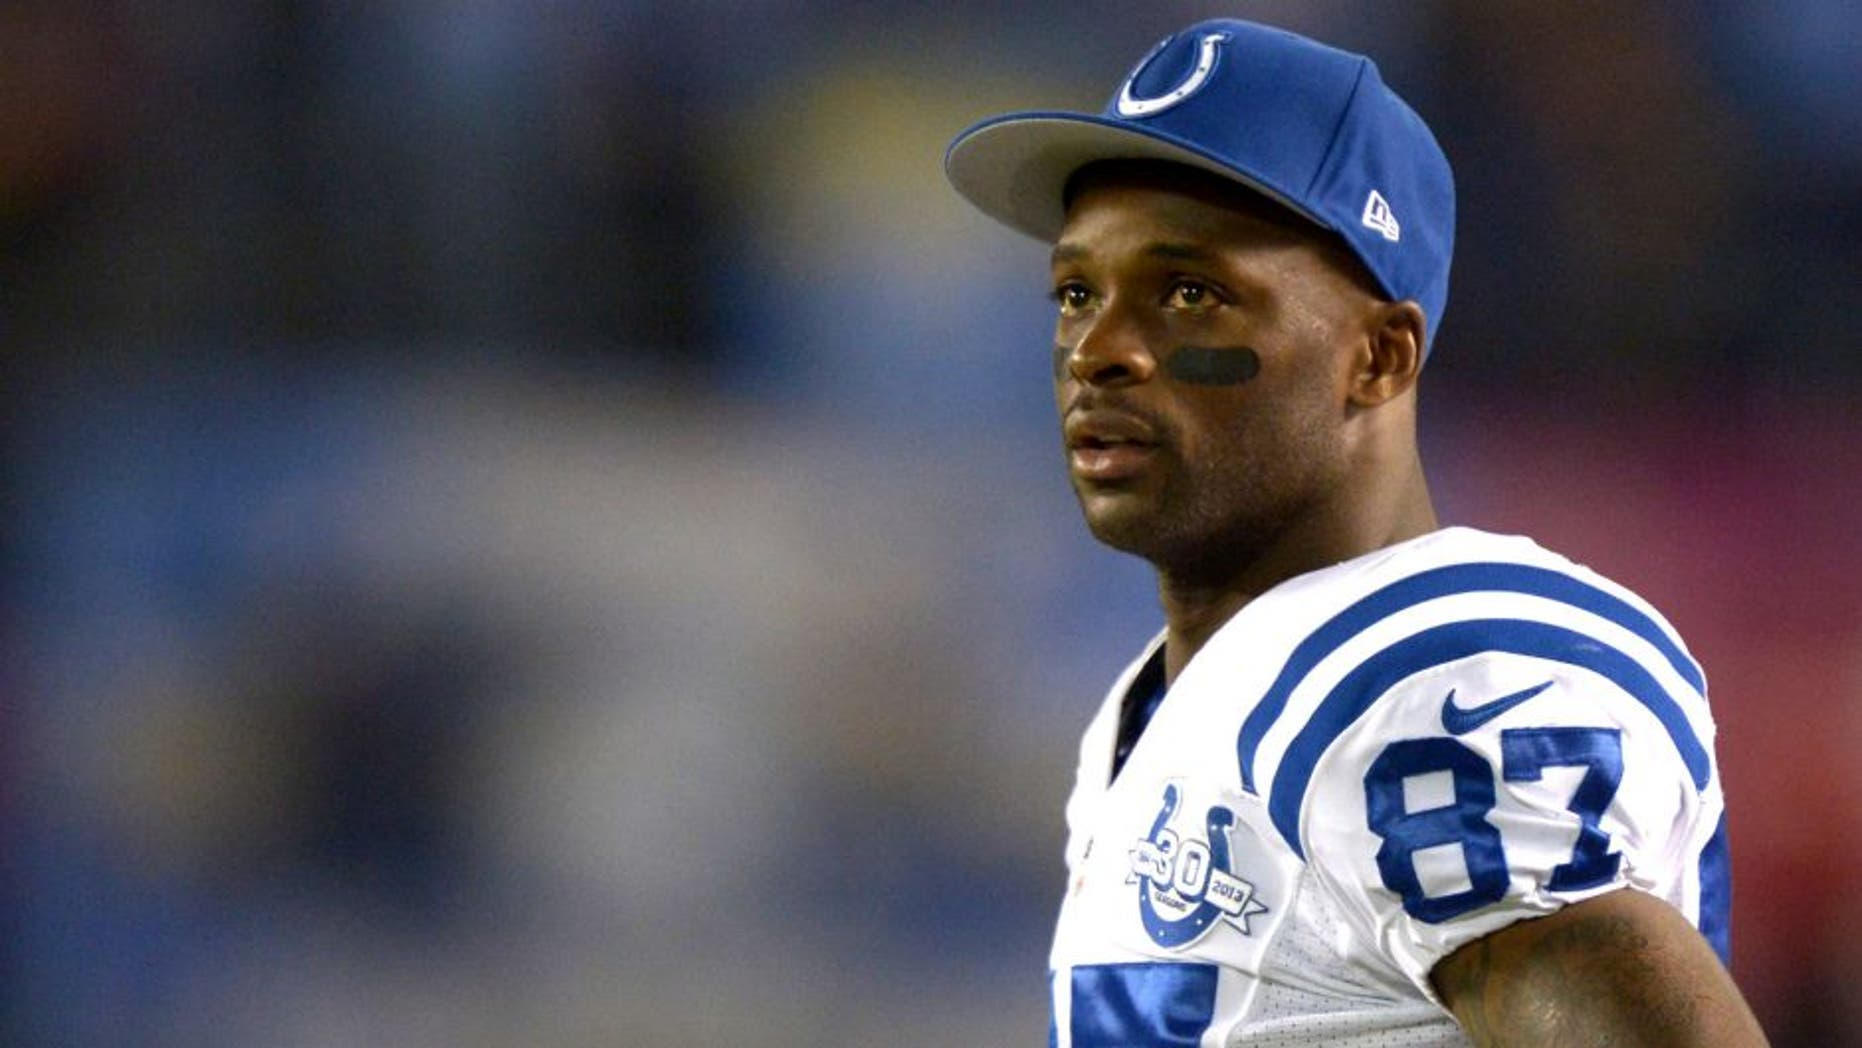 Oct 14, 2013; San Diego, CA, USA; Indianapolis Colts receiver Reggie Wayne (87) watches on the sidelines during the game against the San Diego Chargers at Qualcomm Stadium. The Chargers defeated the Colts 19-9. Mandatory Credit: Kirby Lee-USA TODAY Sports